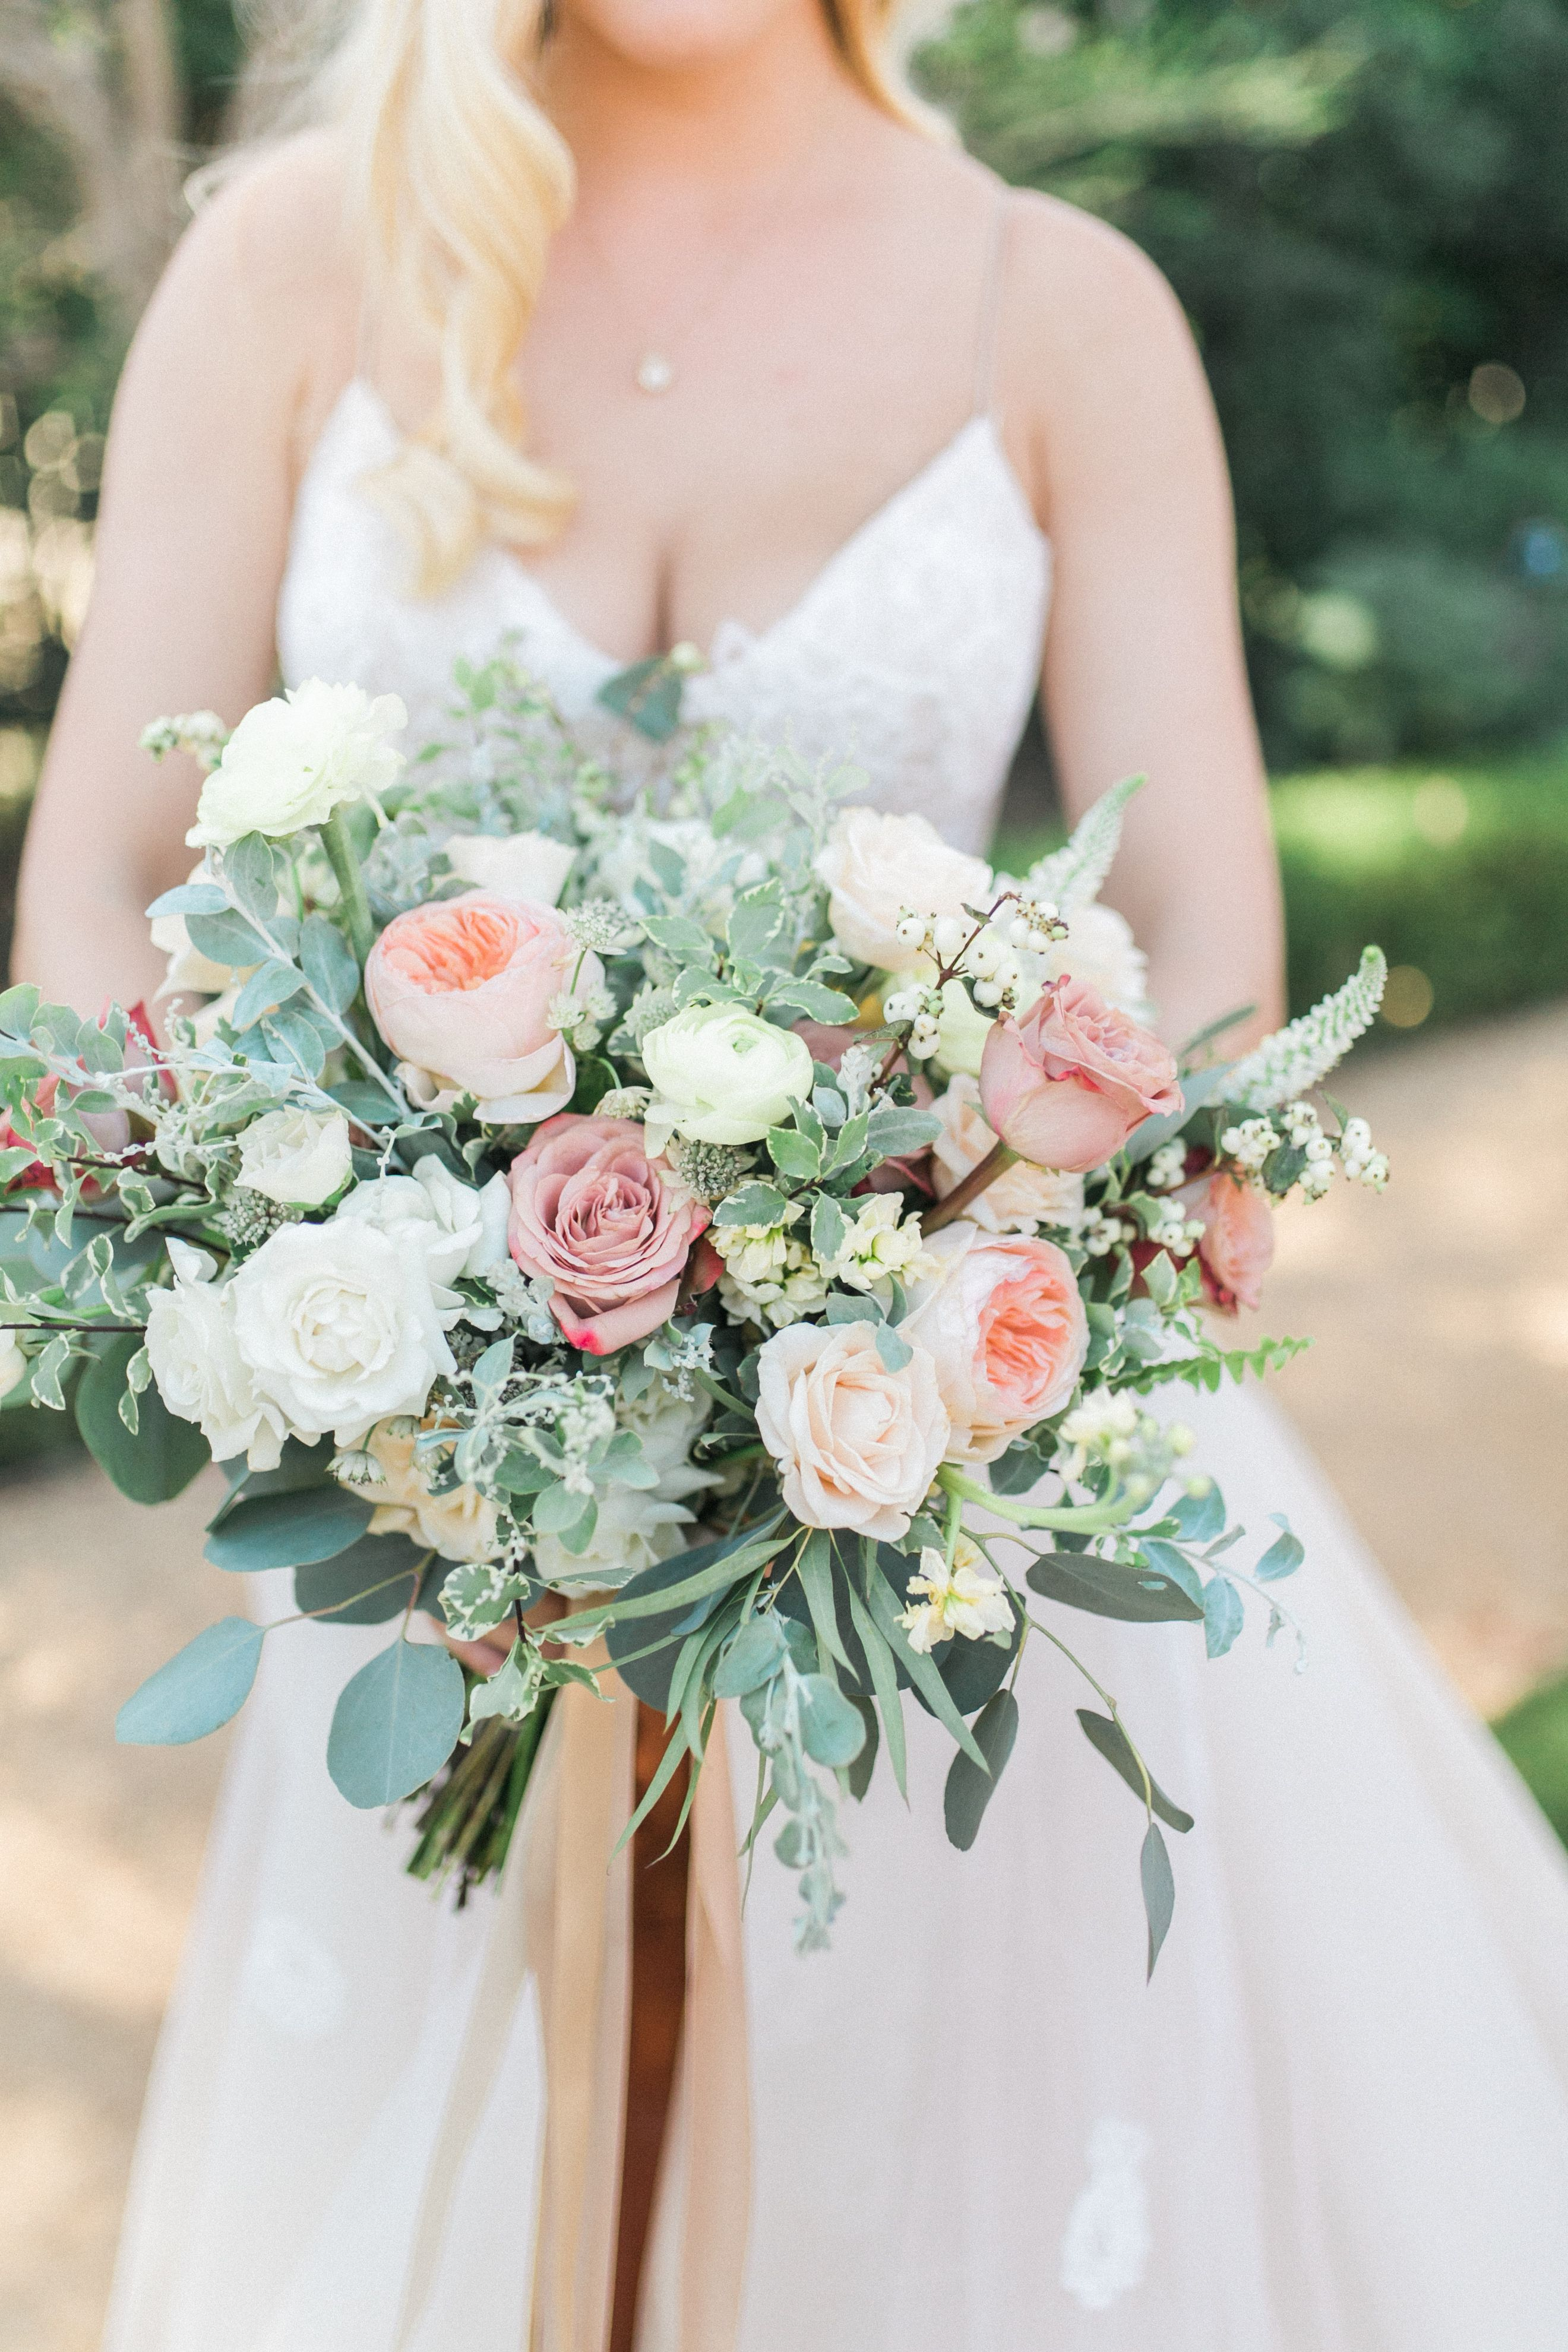 Earthy Bridal Bouquet With Blush And Cream Roses Boho Wedding